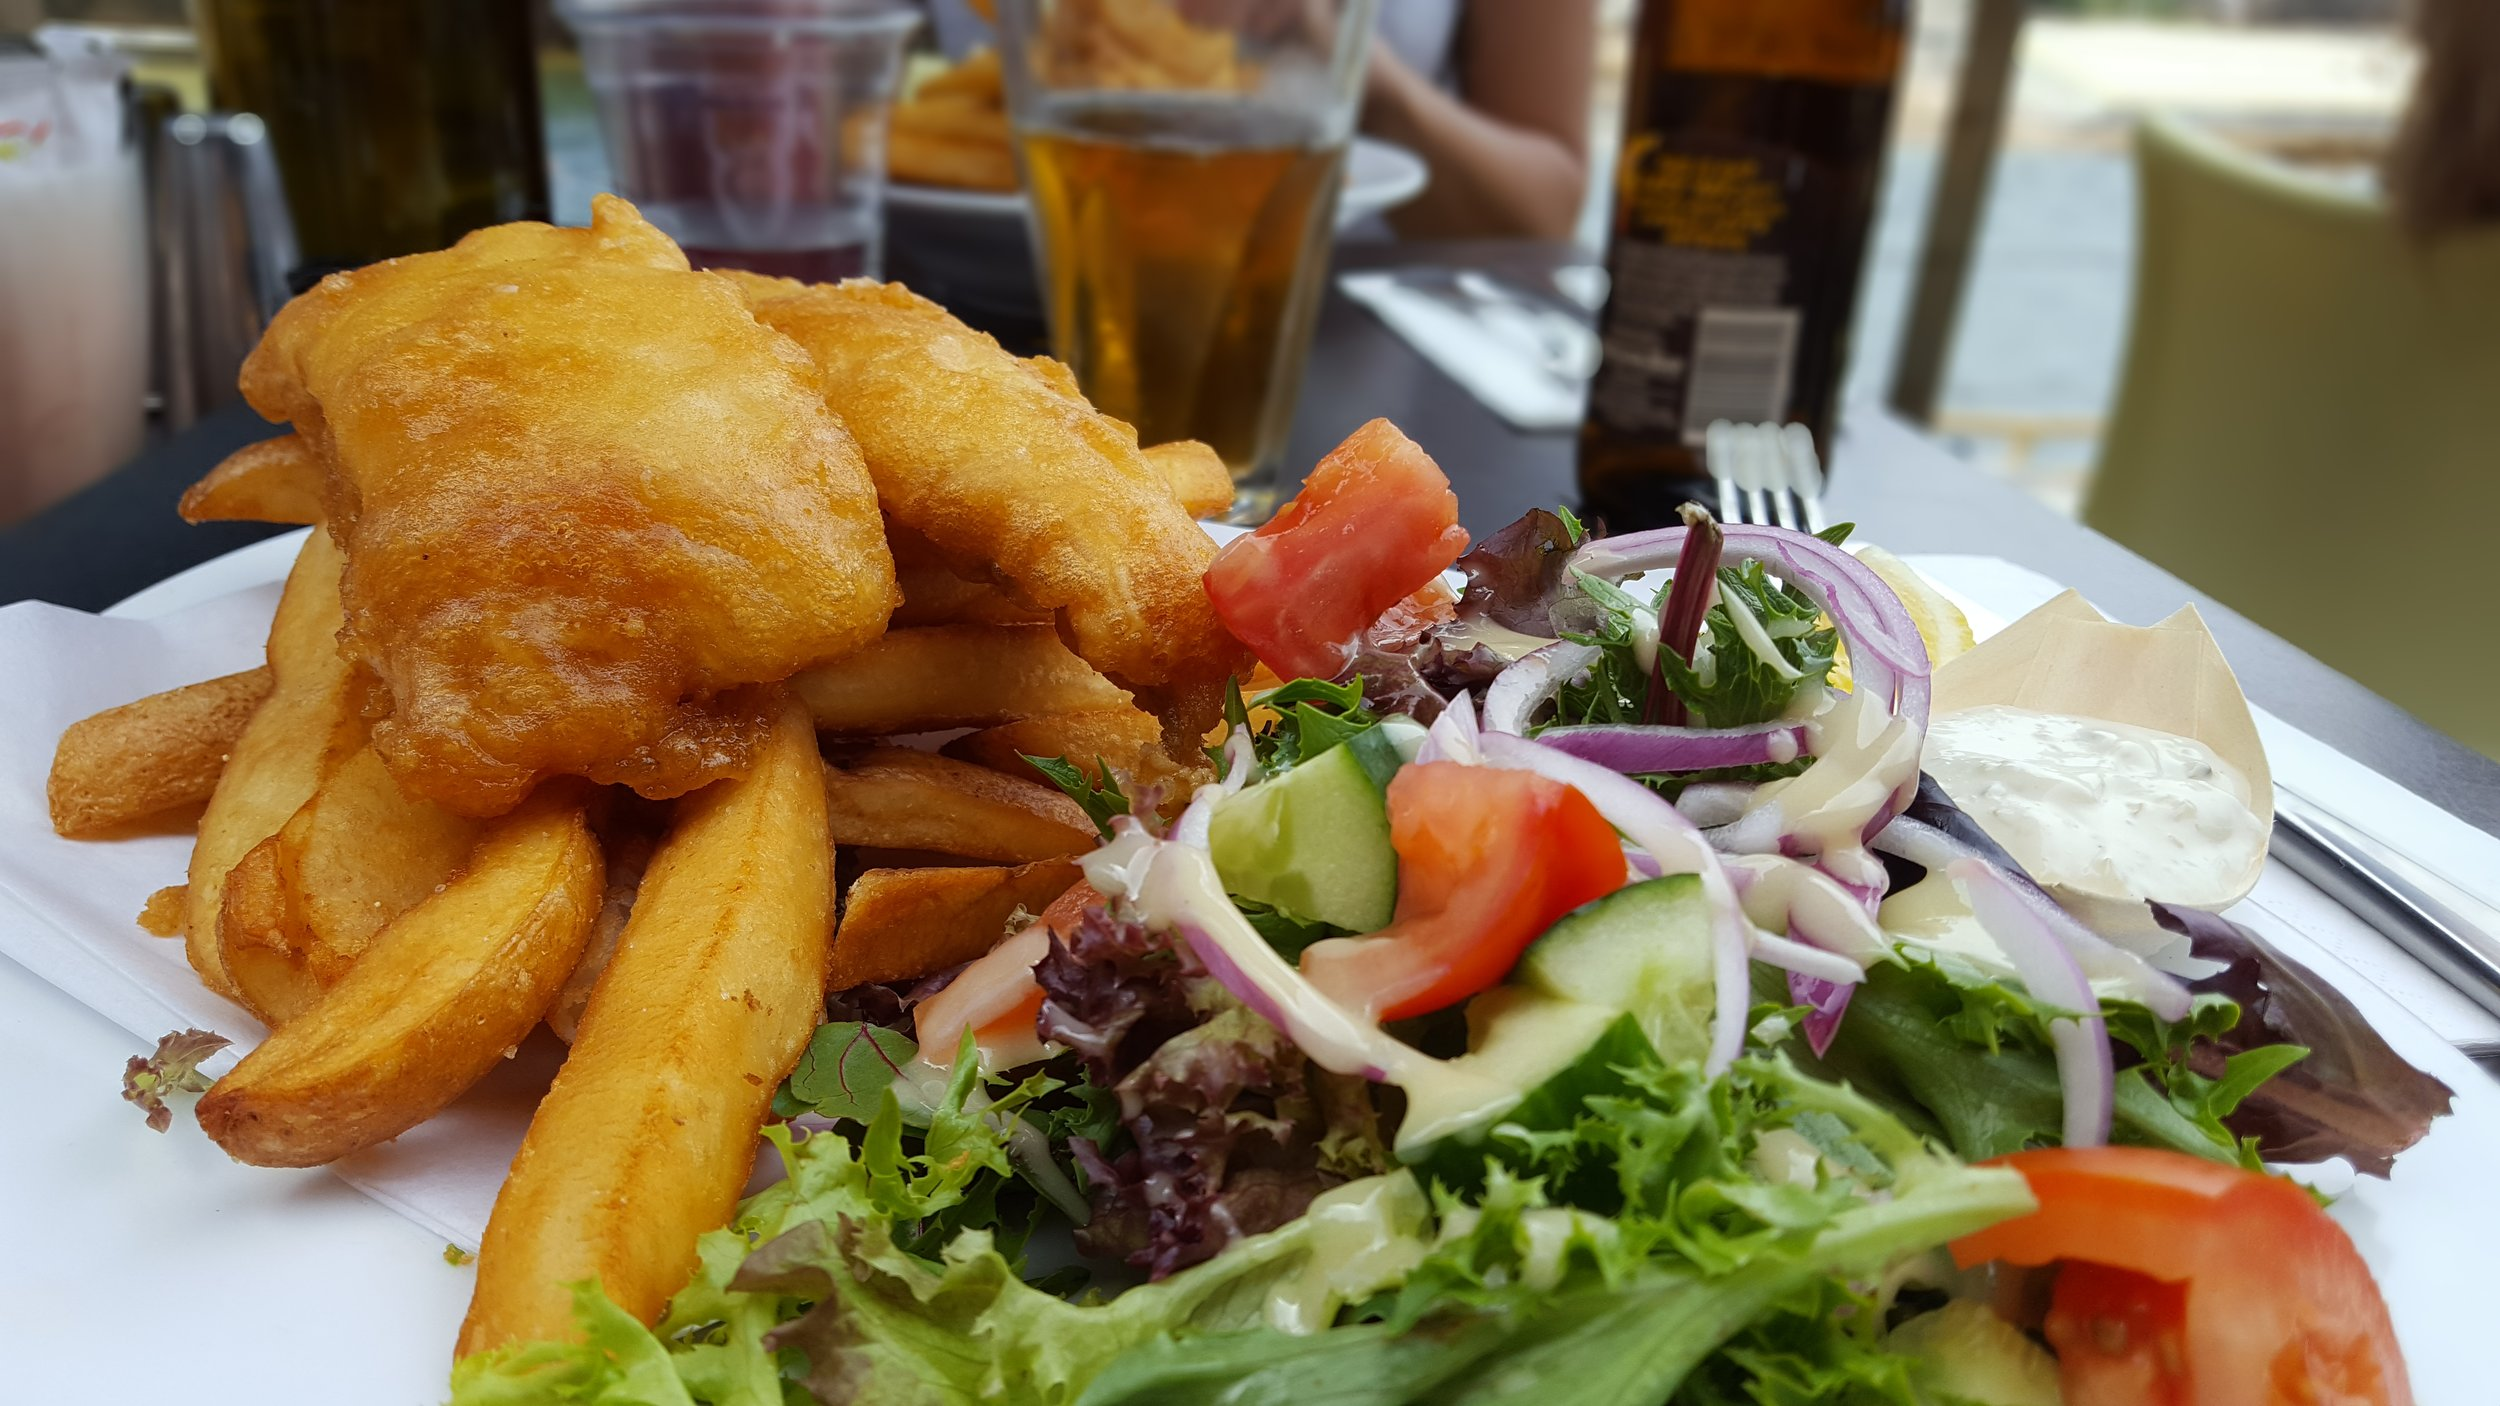 A walk on the beach requires fish and chips.  Seasalt Cafe